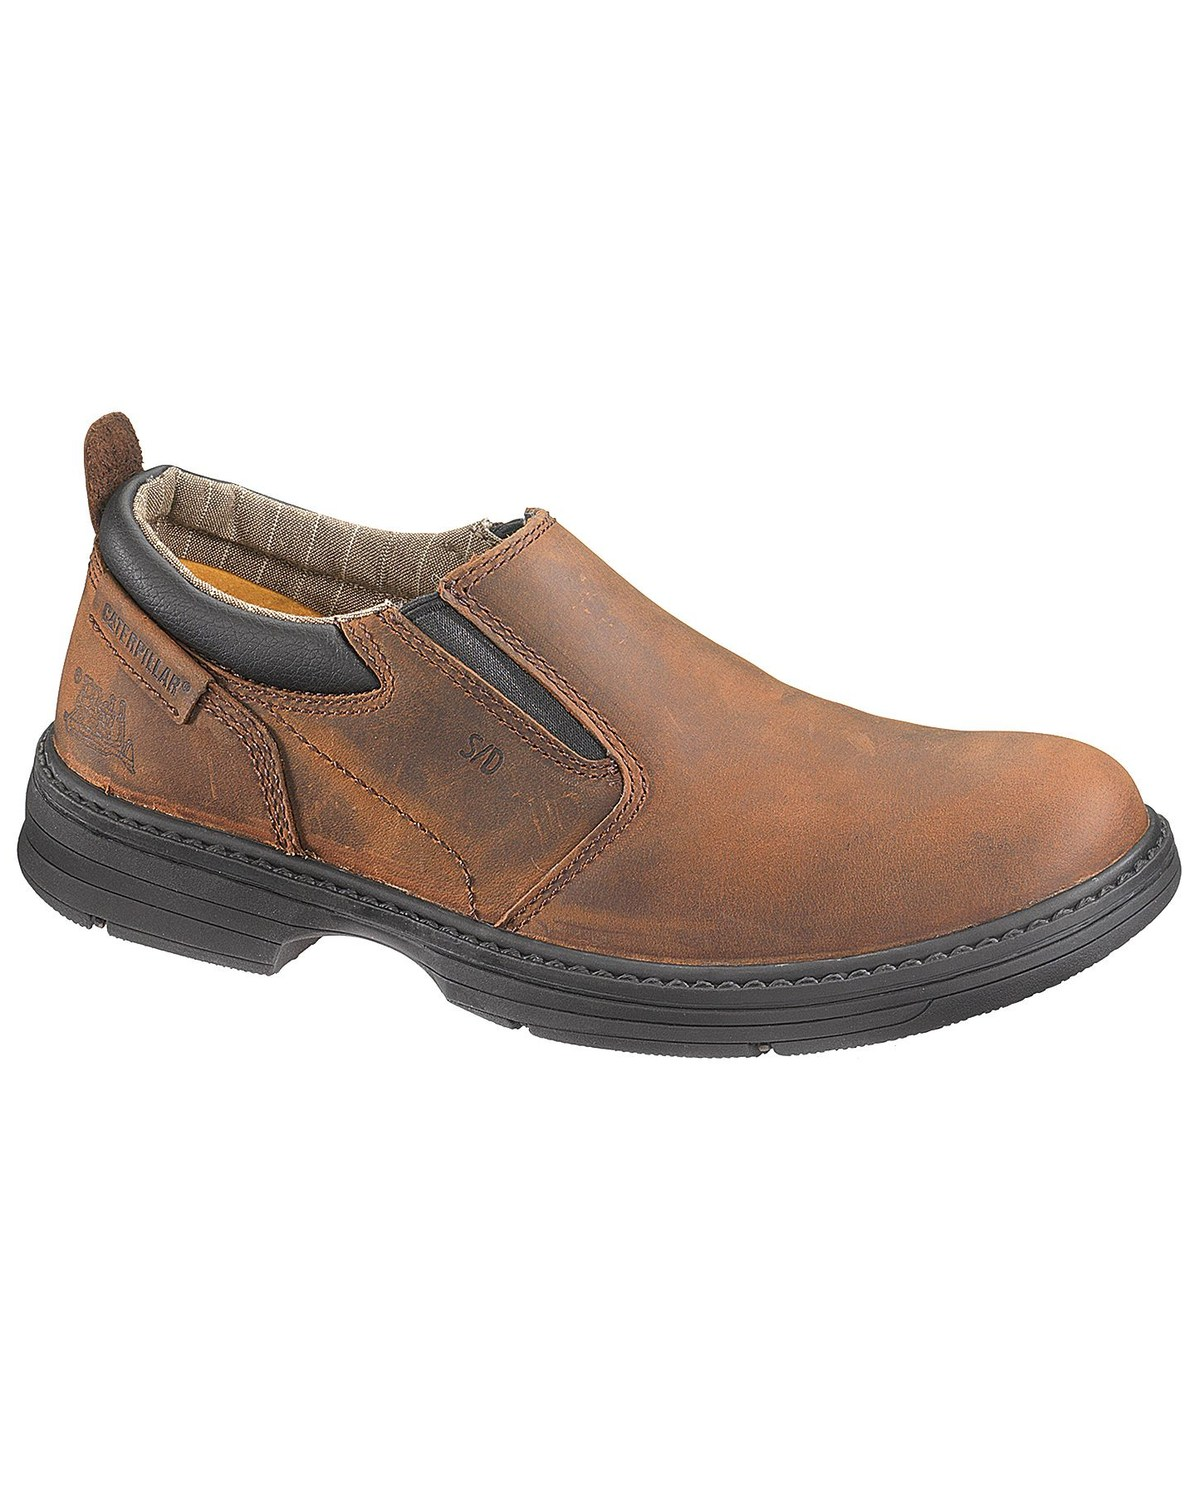 Caterpillar Conclude Slip-On Work Shoes